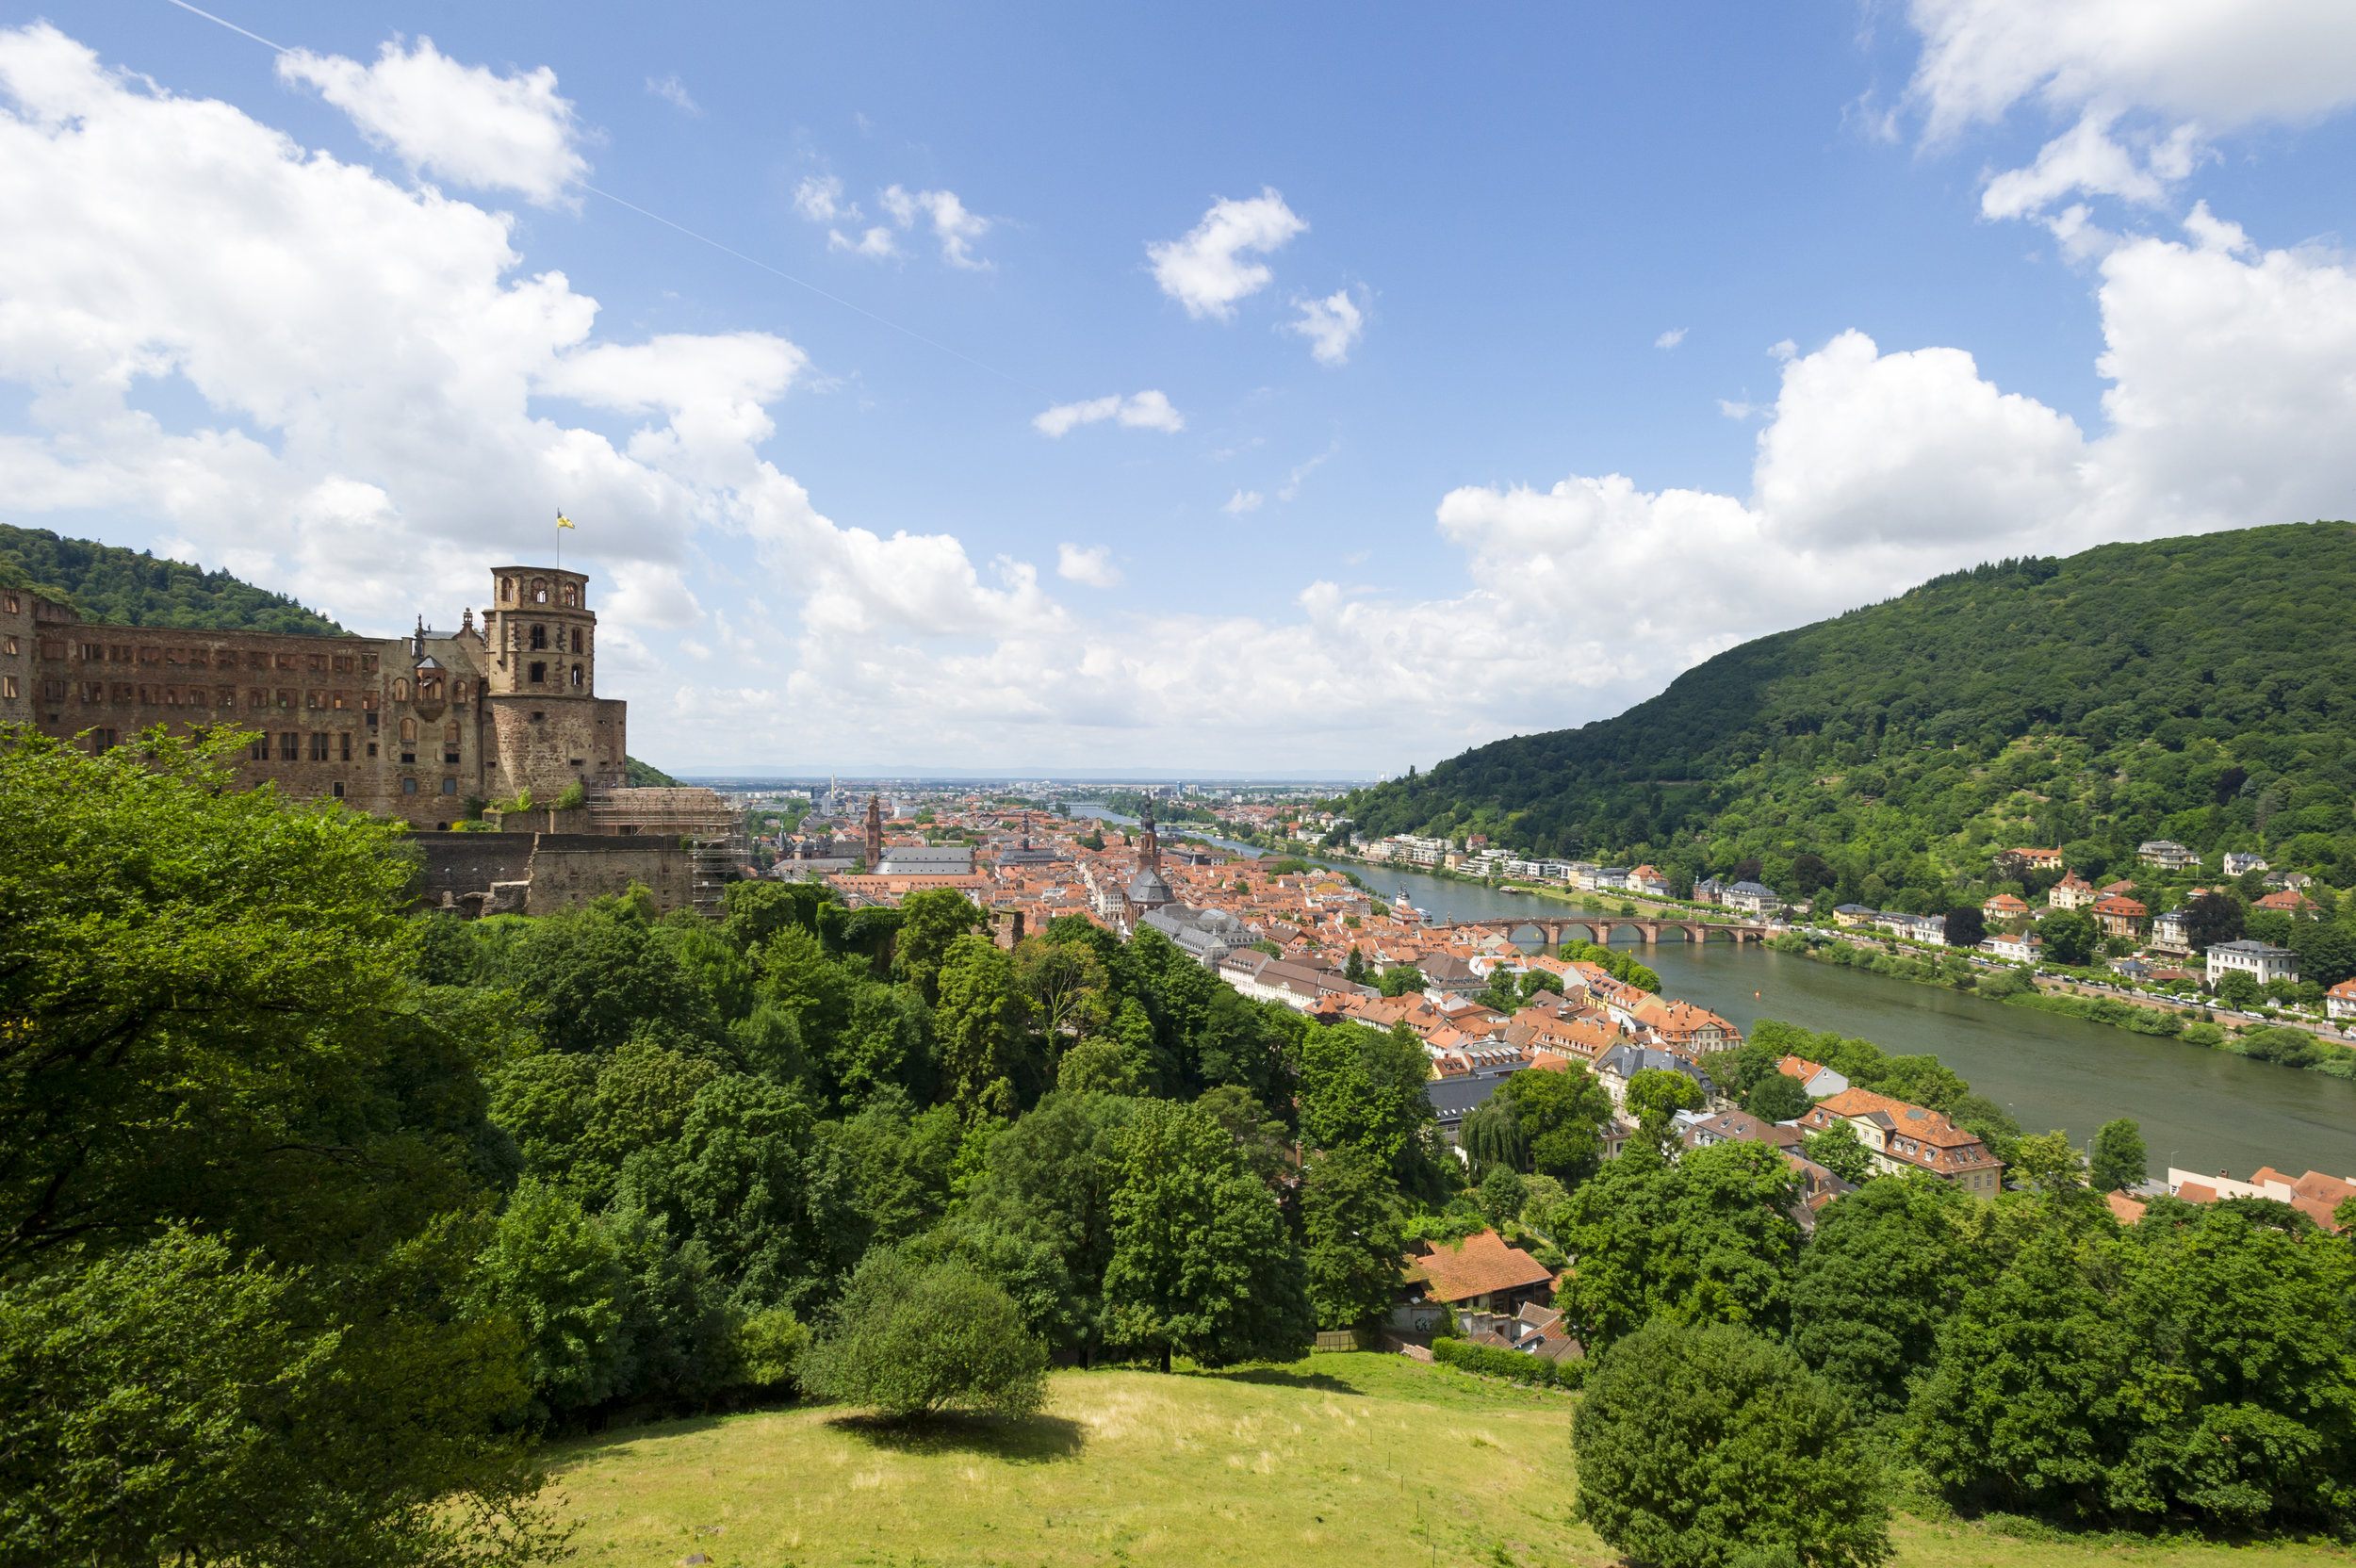 heidelberg-castle-rhine-germany-1.jpg